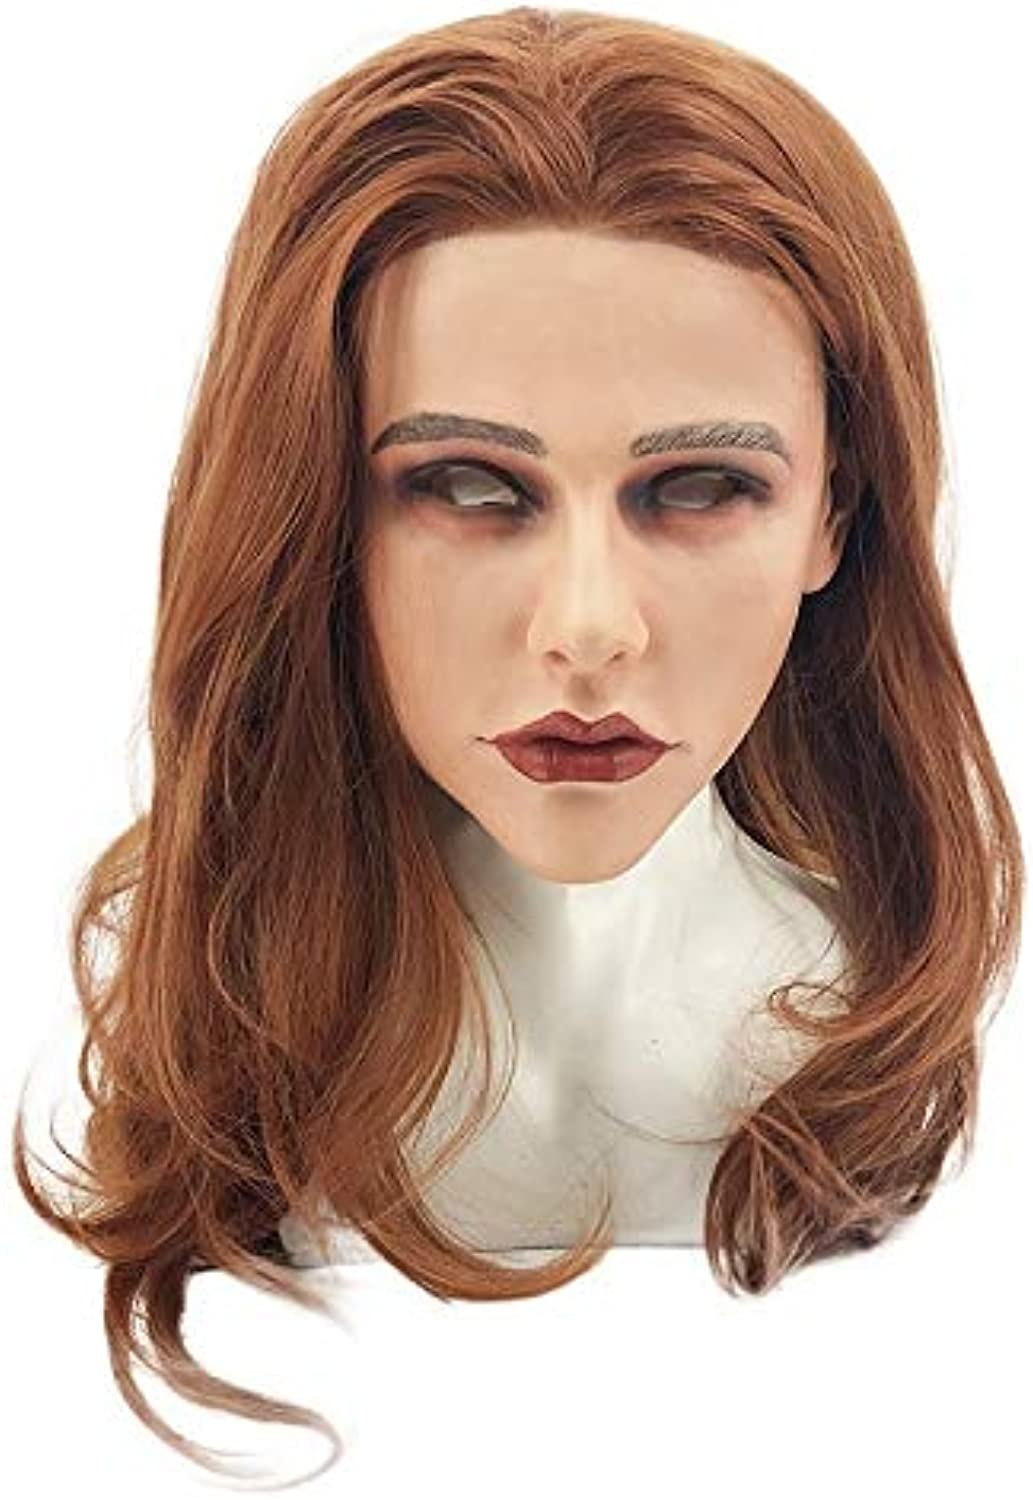 Female Skin Mask Halloween Cosplay Crossdress Silicone Mask for Male